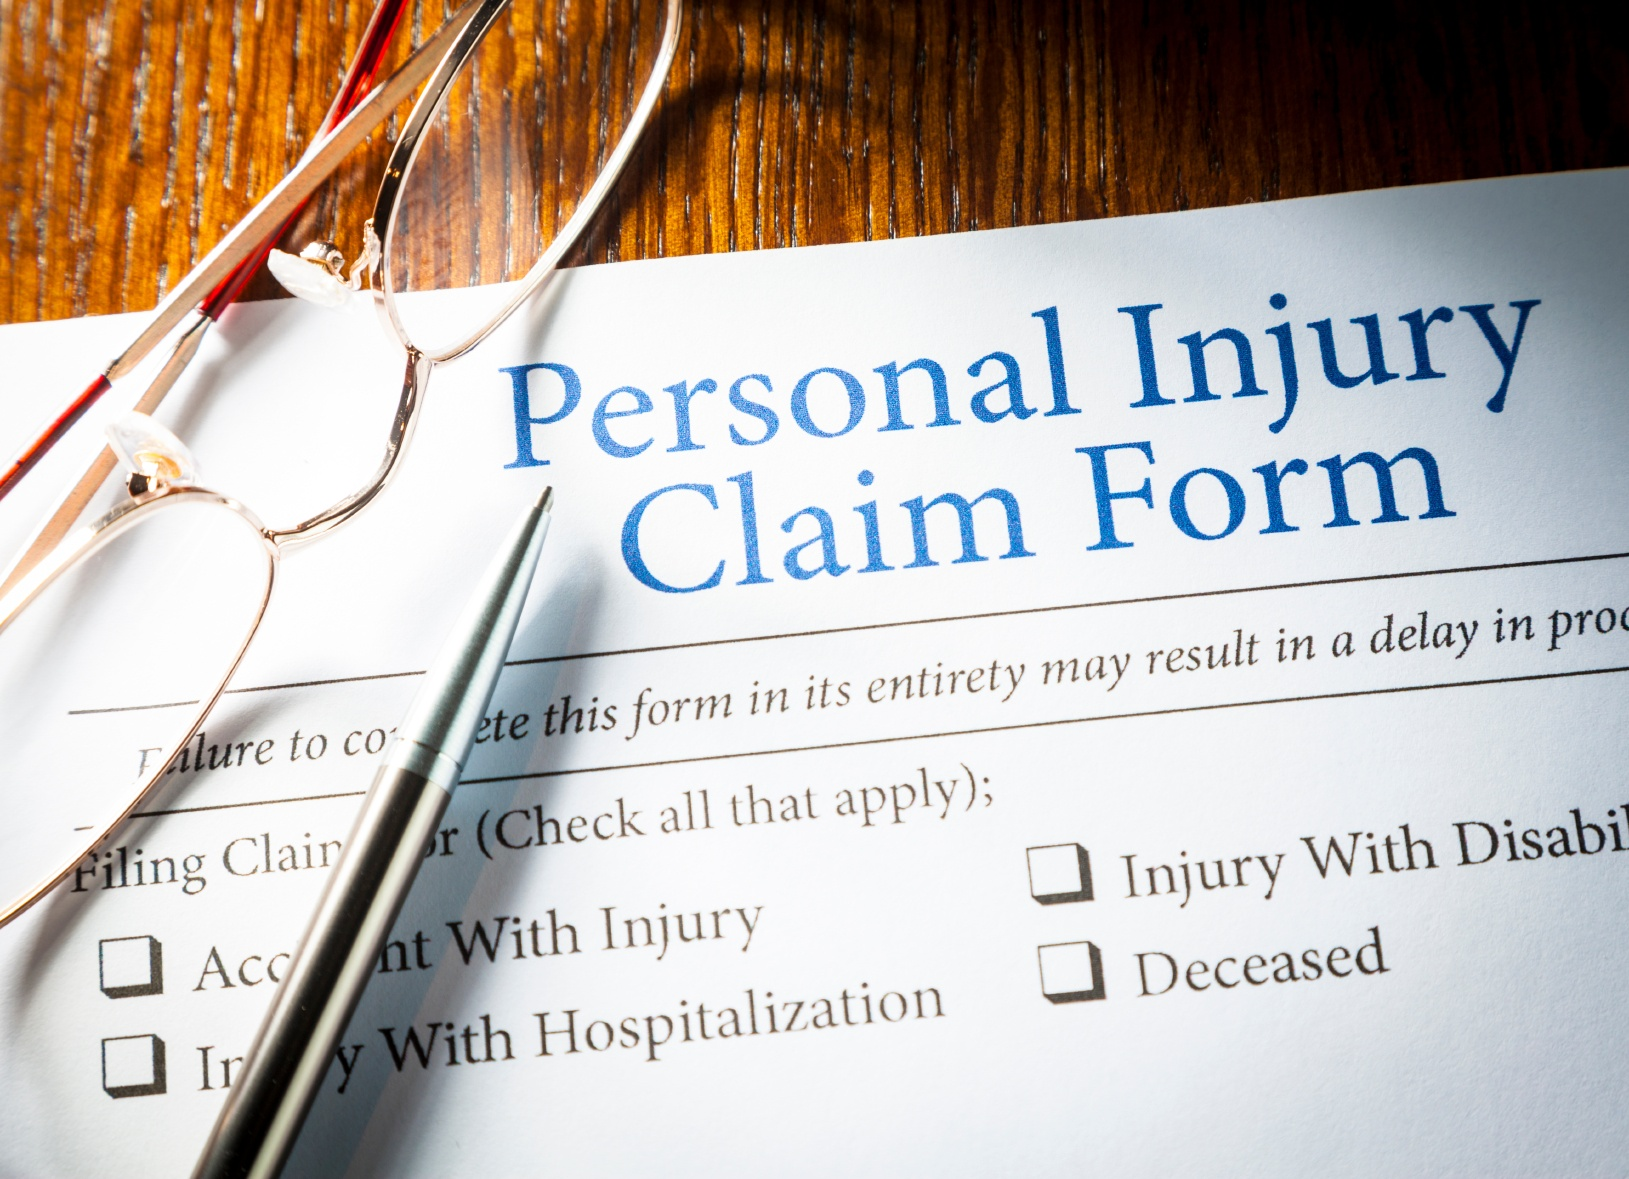 Atlanta Personal Injury Law Firm